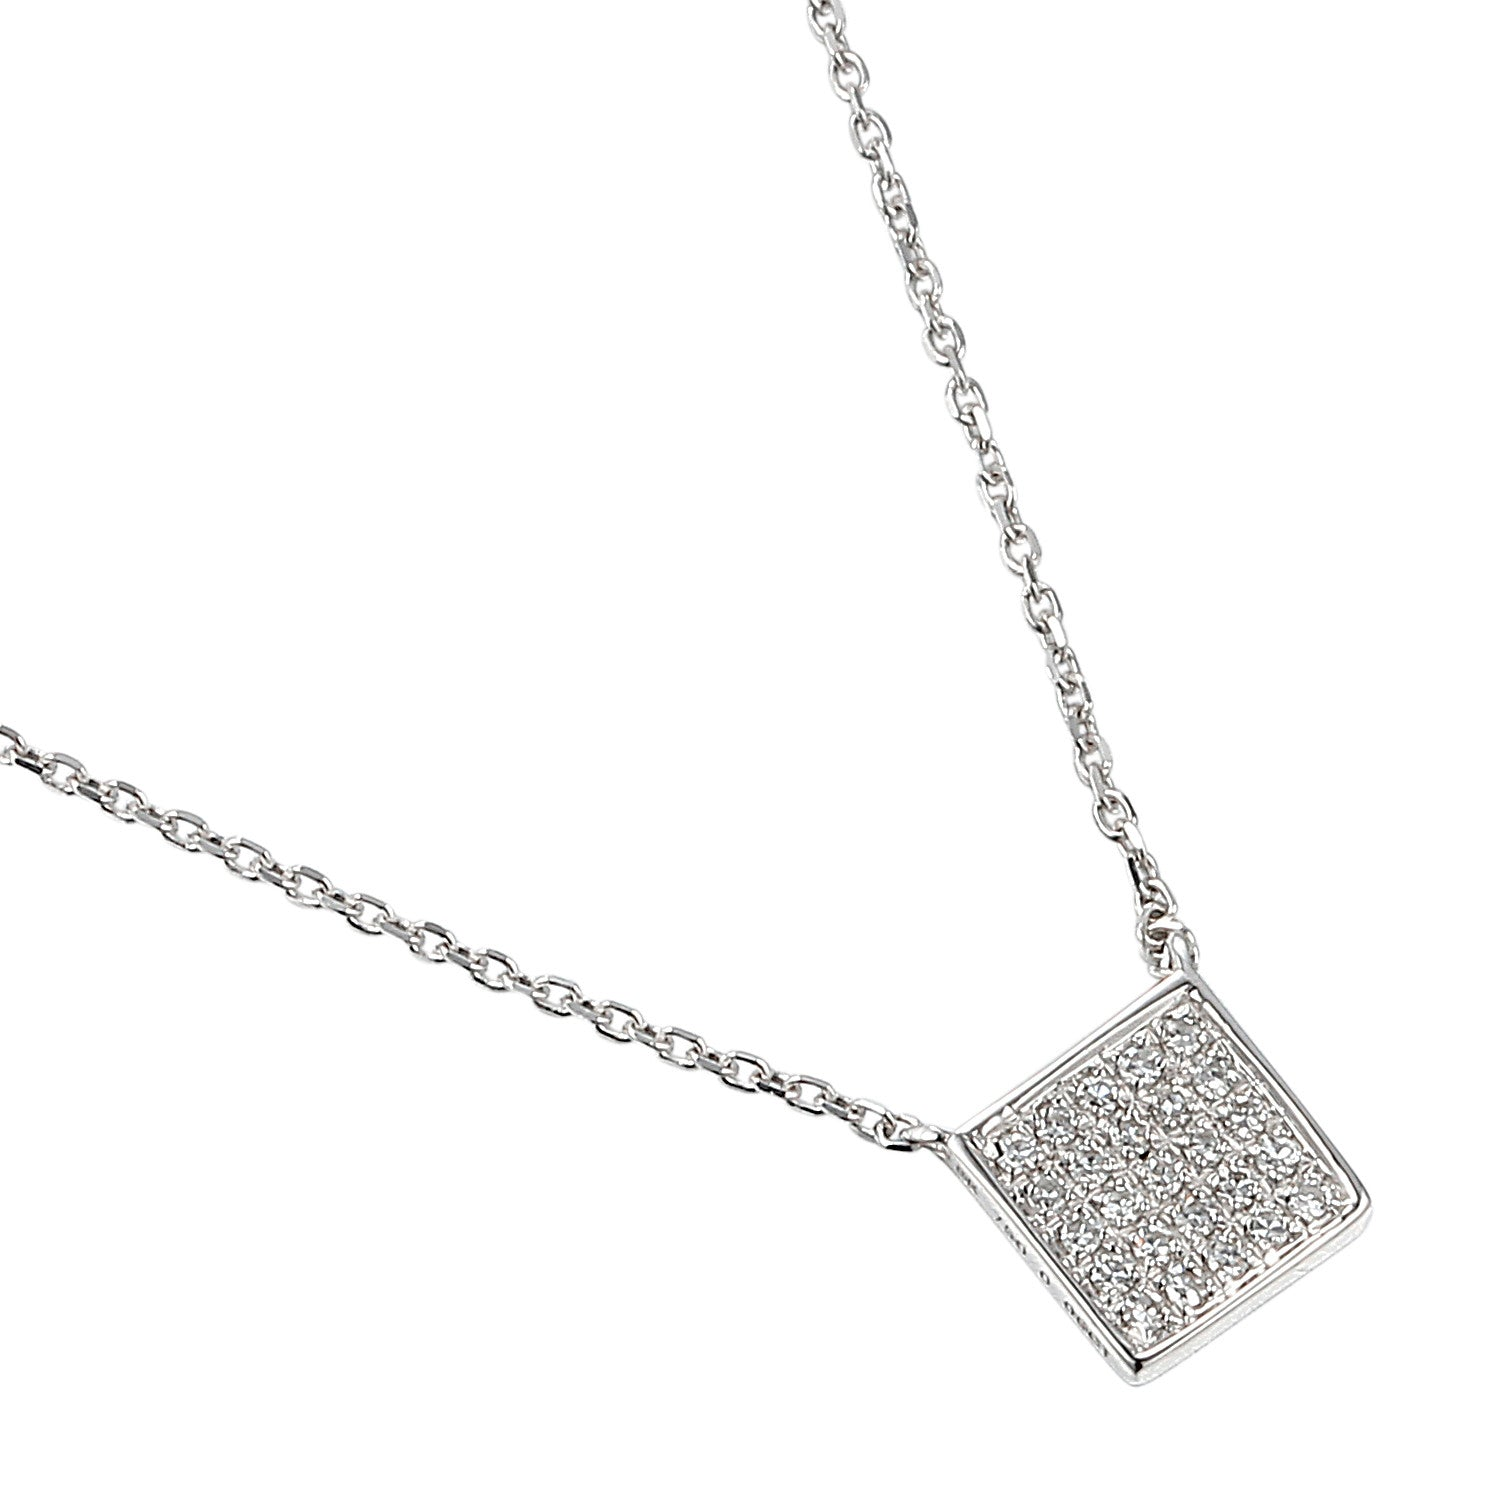 free shaped jewelry silver square sterling necklace shipping cluster today product i h pendant watches tdw com diamond overstock